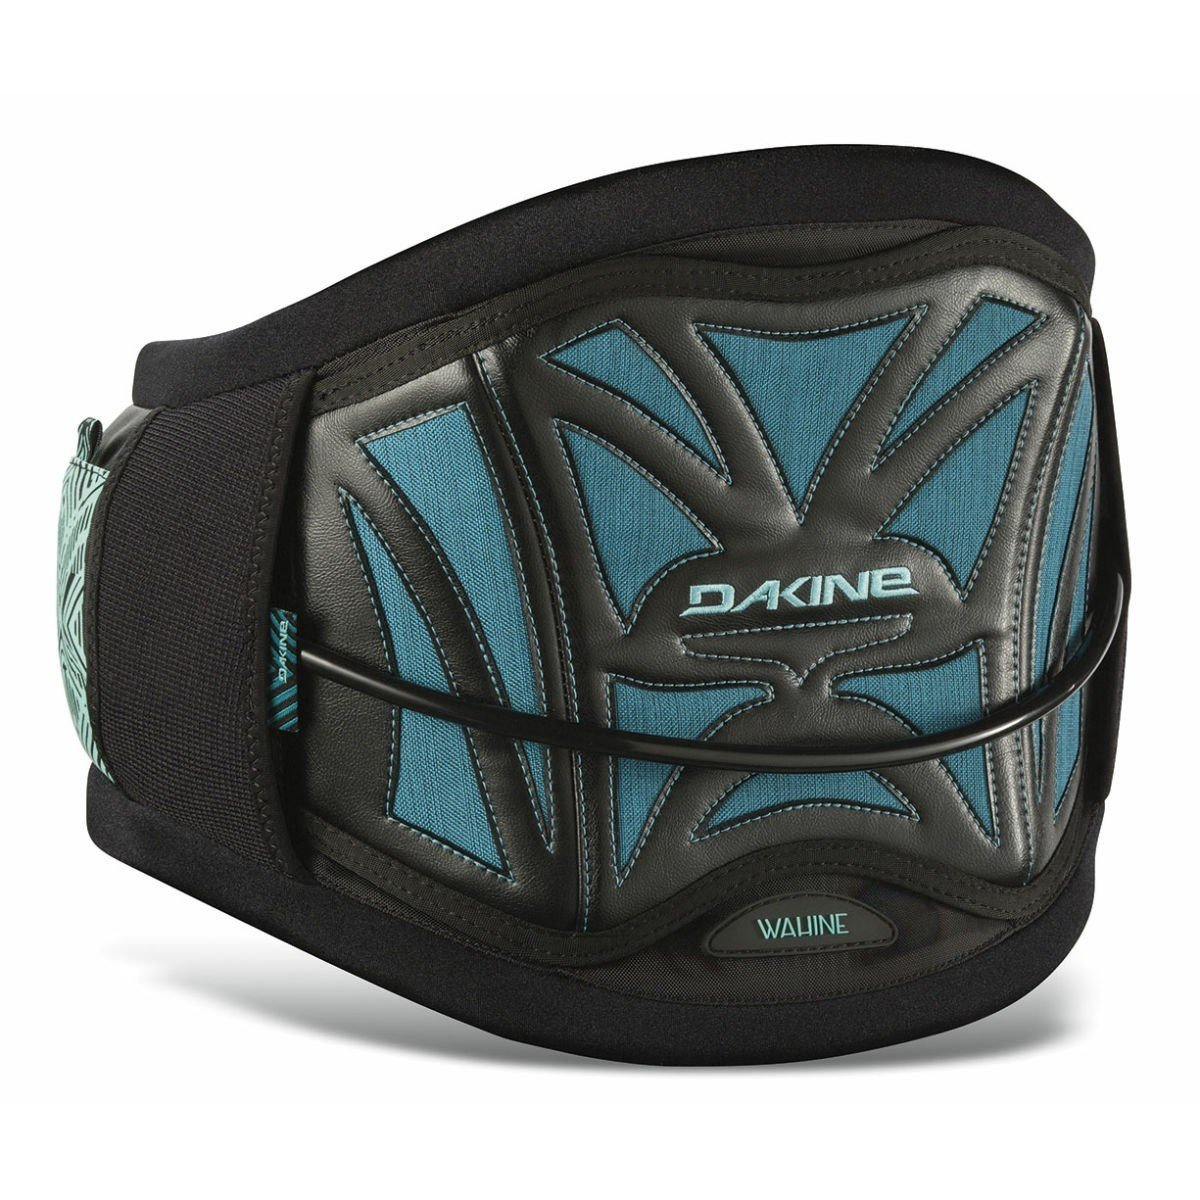 2016 Dakine Wahine Girls Kite/Windsurf Harness